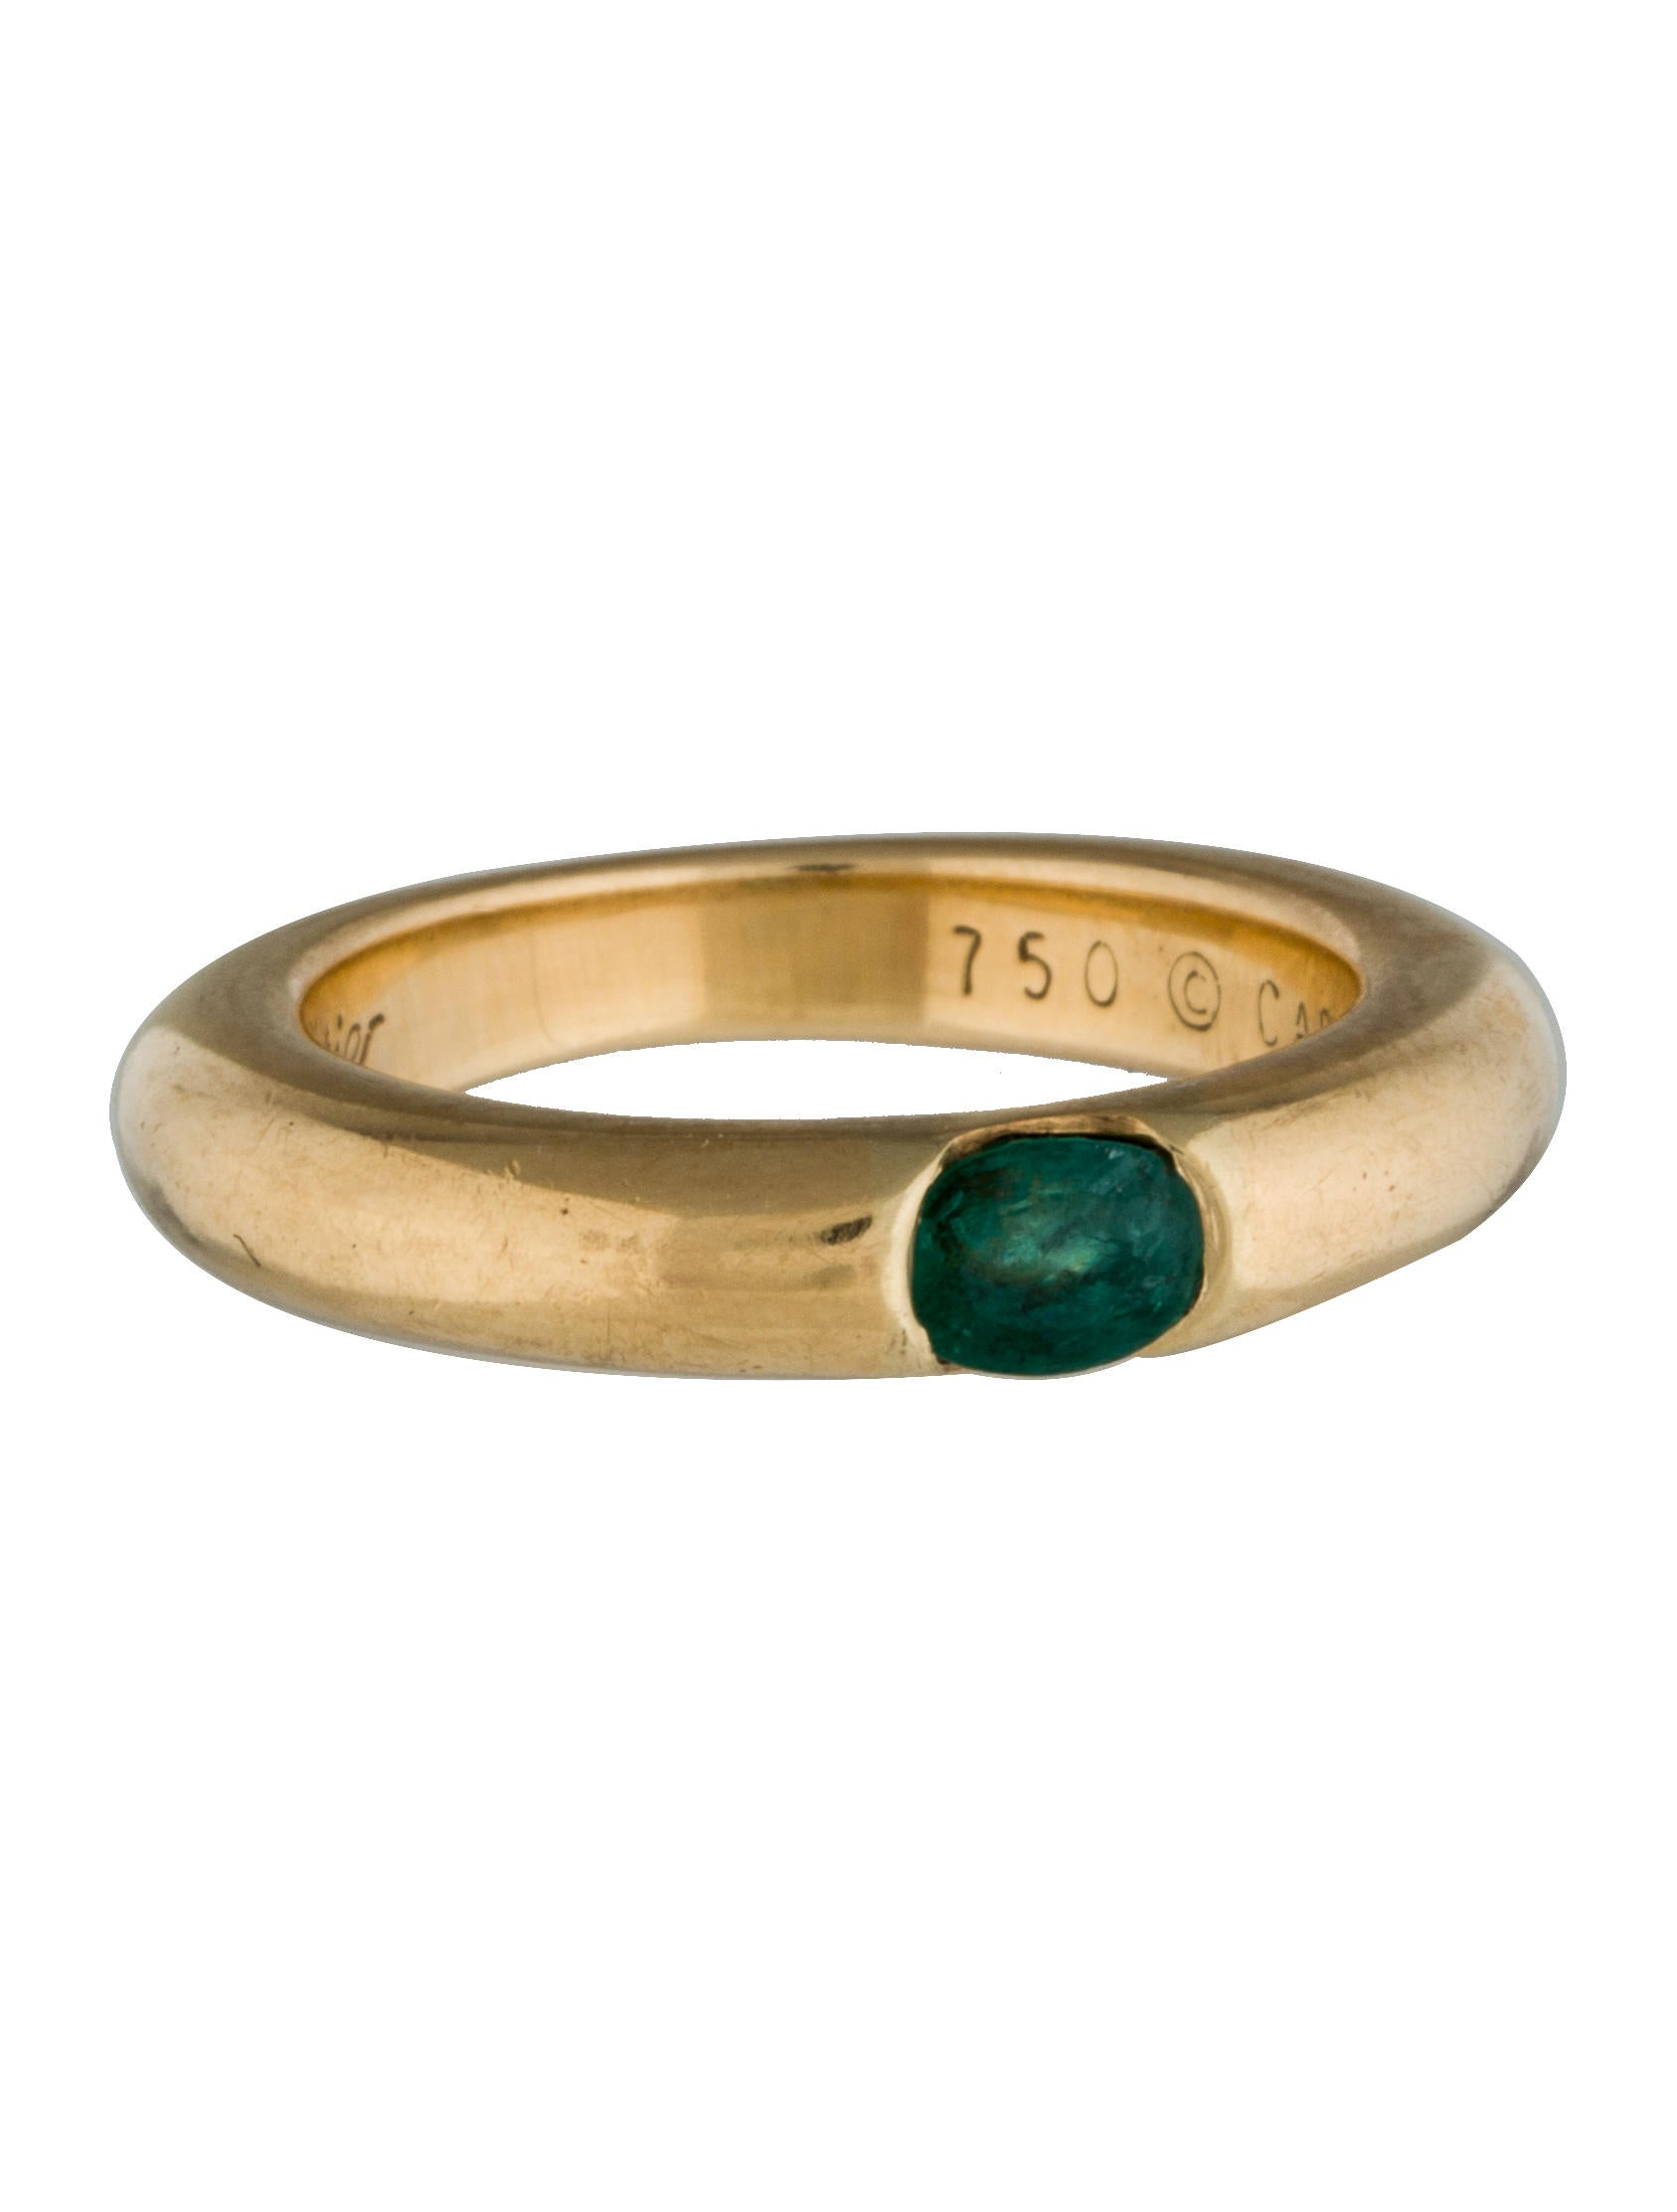 emerald diamond bangles sku bracelet jewellery bracelets fine views natural cartier wartski and more box green